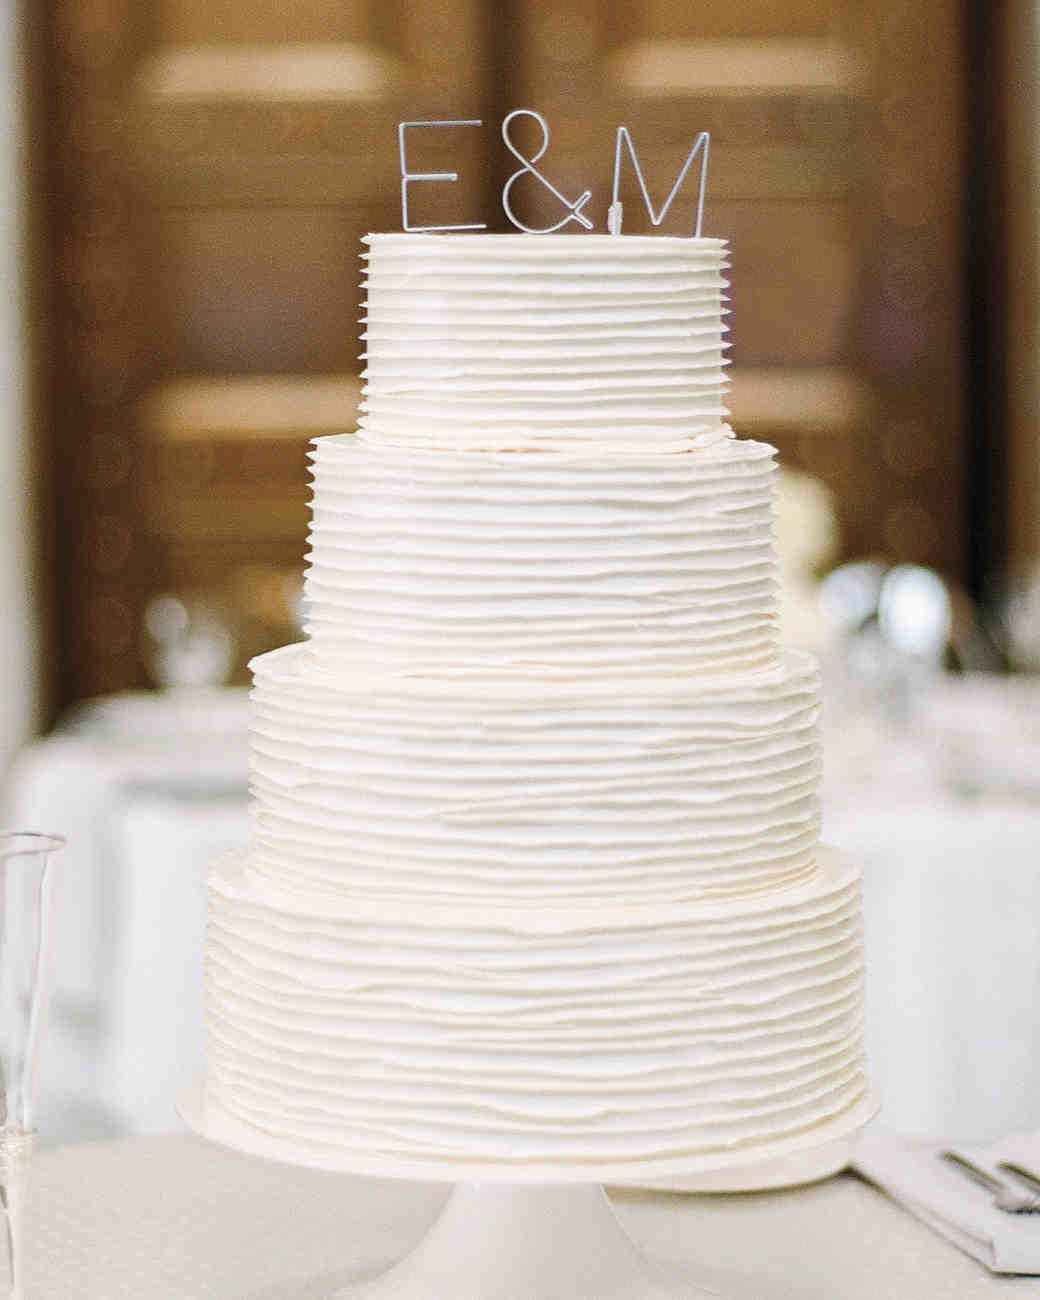 Four-Tiered White Wedding Cake with Layered Icing and Aluminum Initials Topper